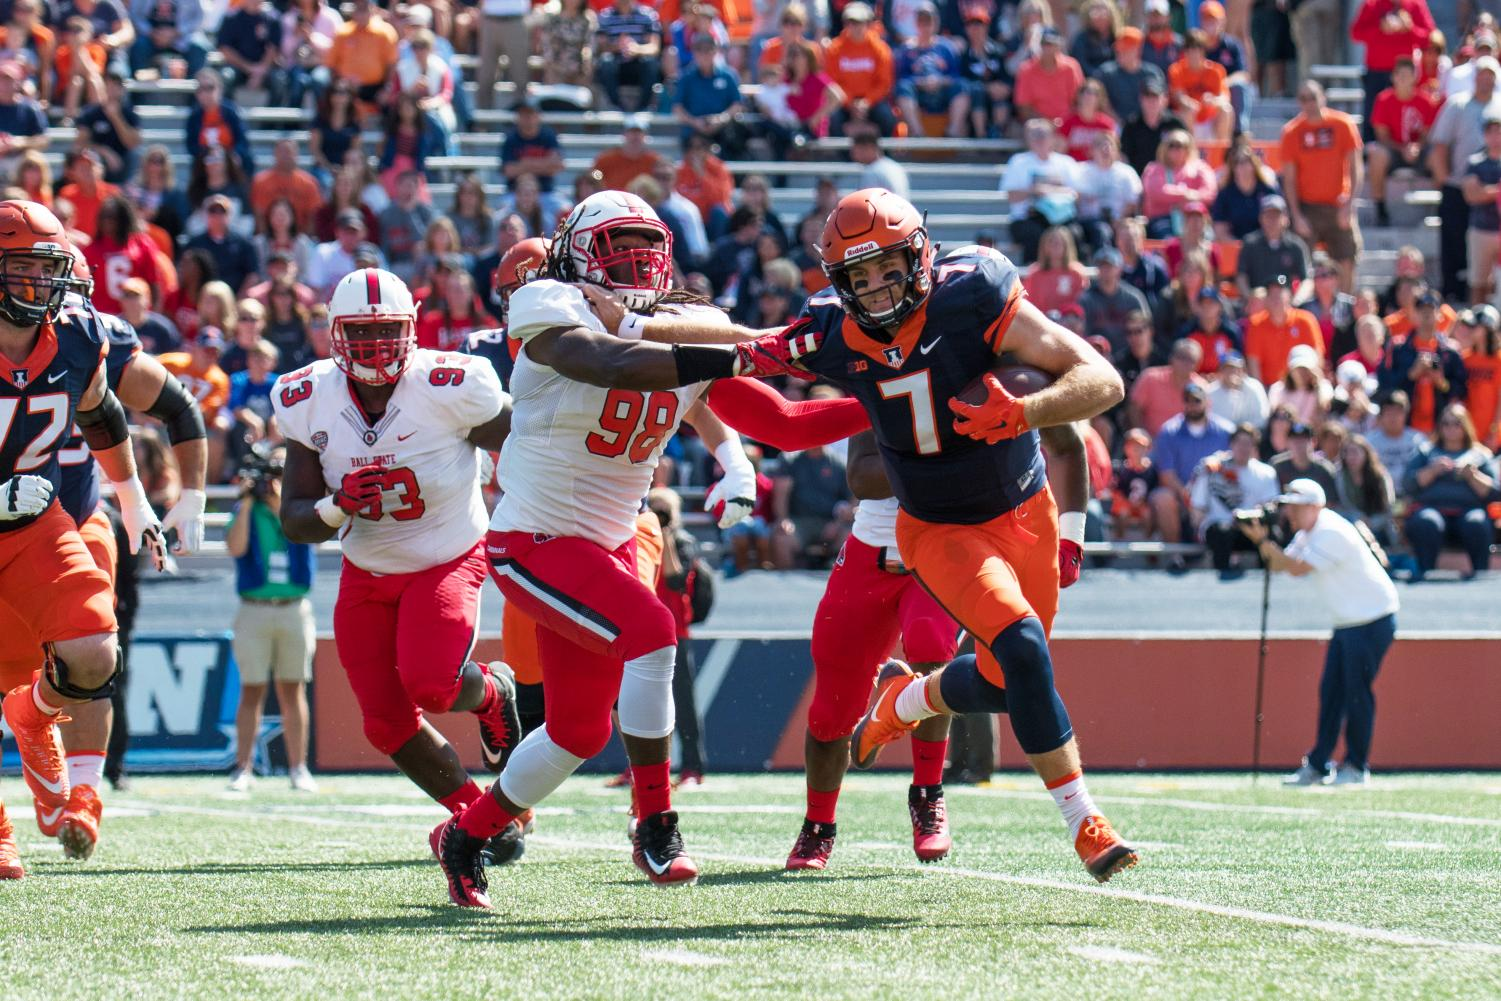 Illinois quarterback Chayce Crouch rolls out of the pocket during the game against Ball State on Saturday, September 2, at Memorial Stadium.